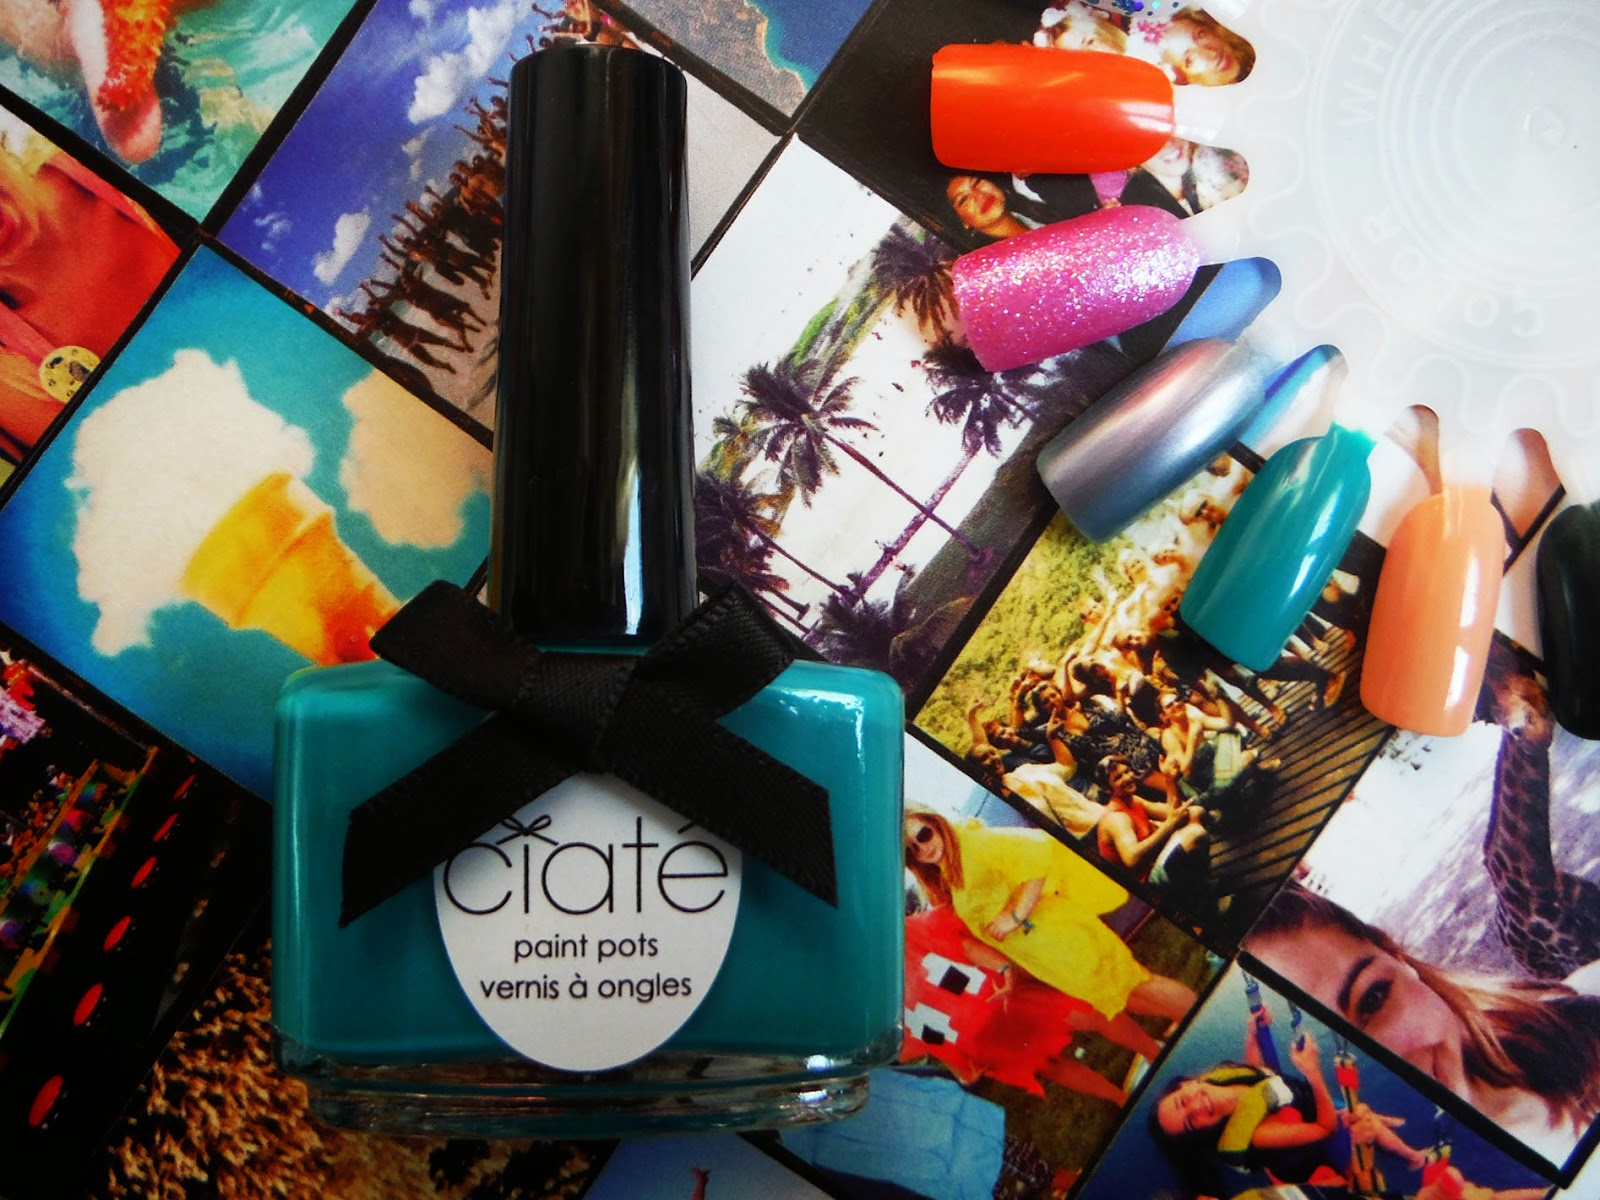 a bottle of green ciate nail varnish